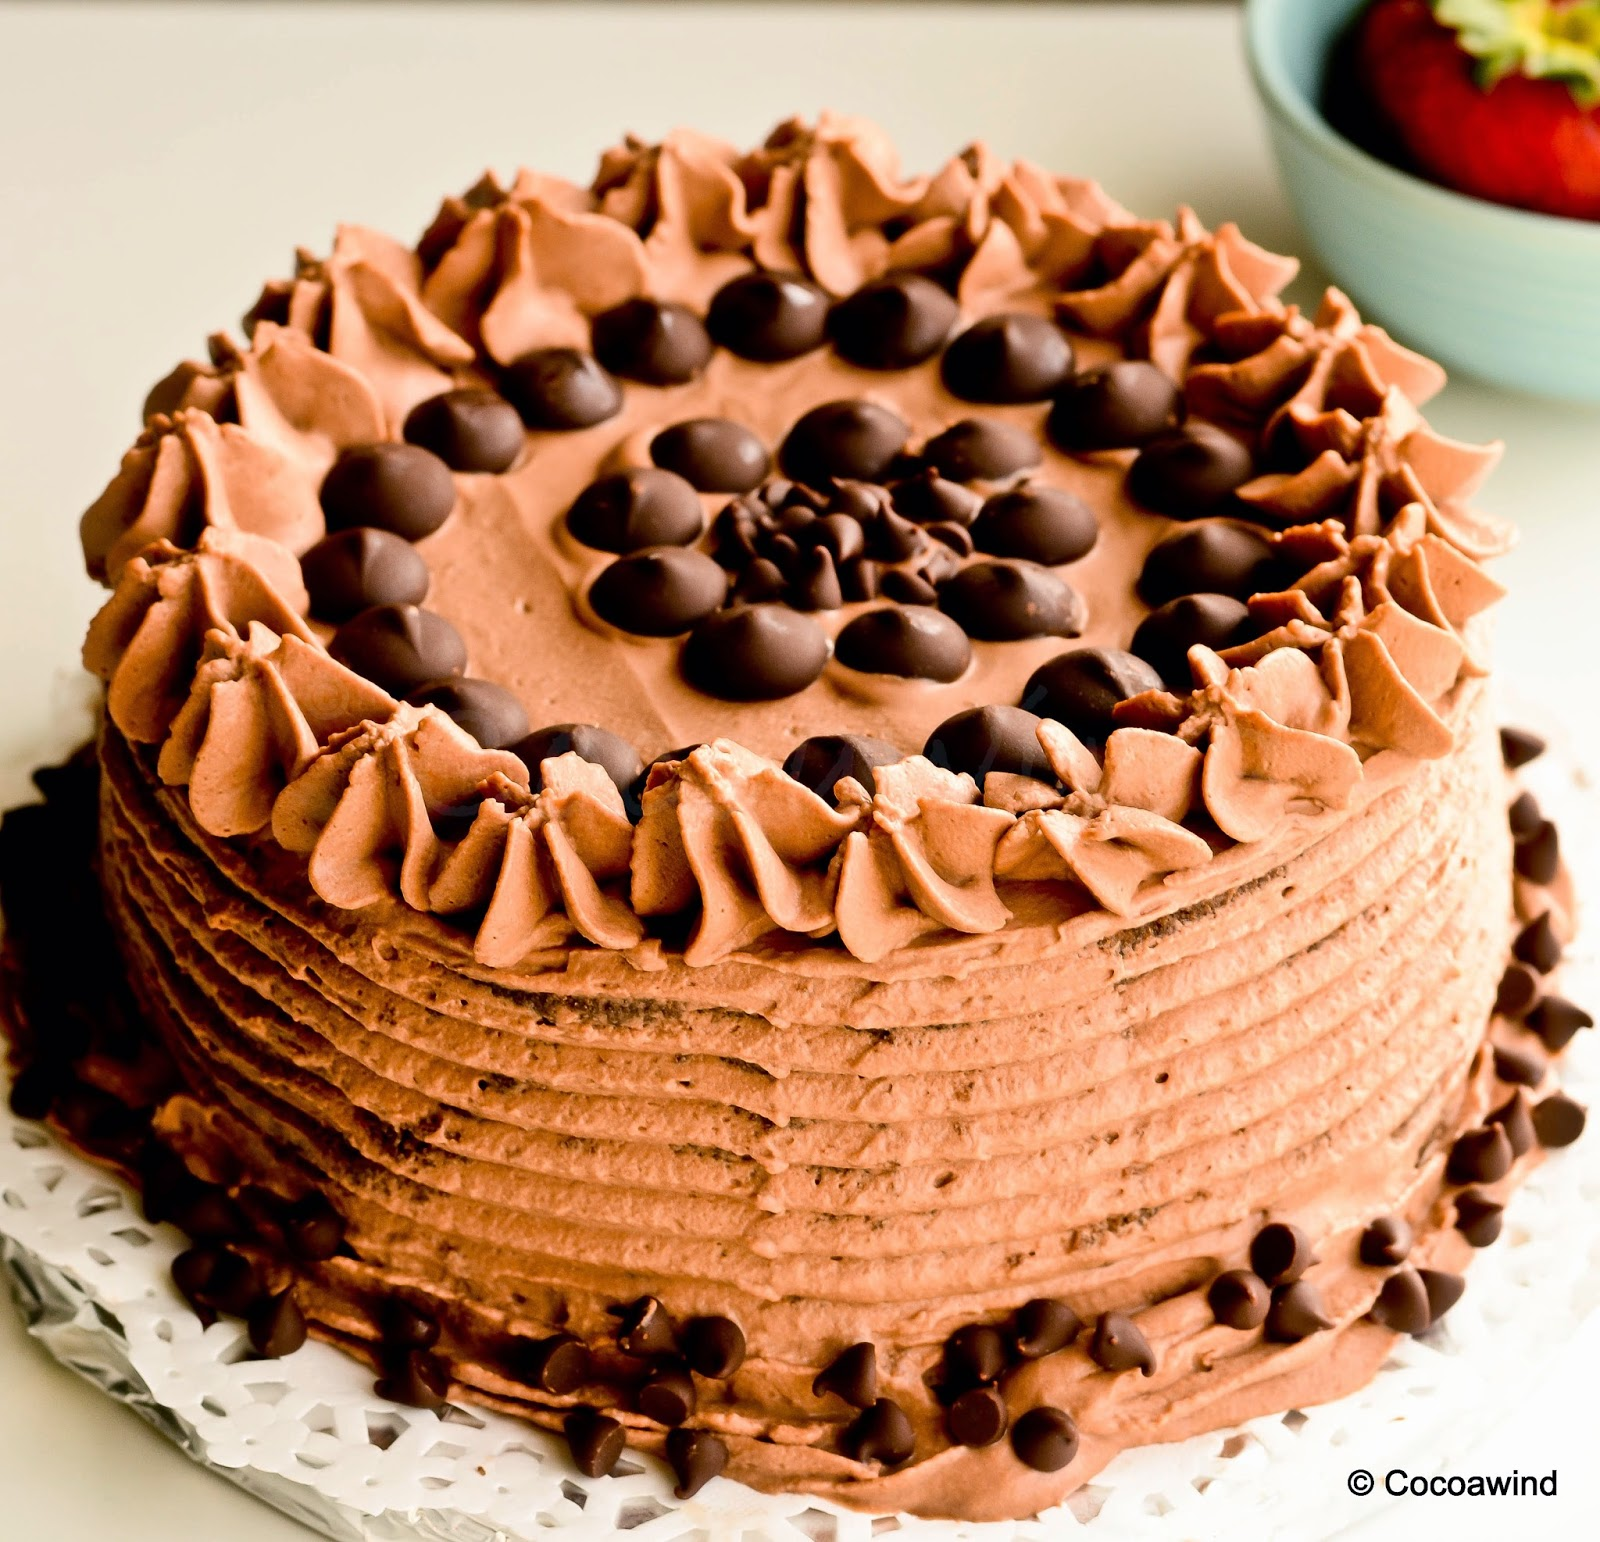 Chocolate Cake with Mocha Whipped Cream Frosting